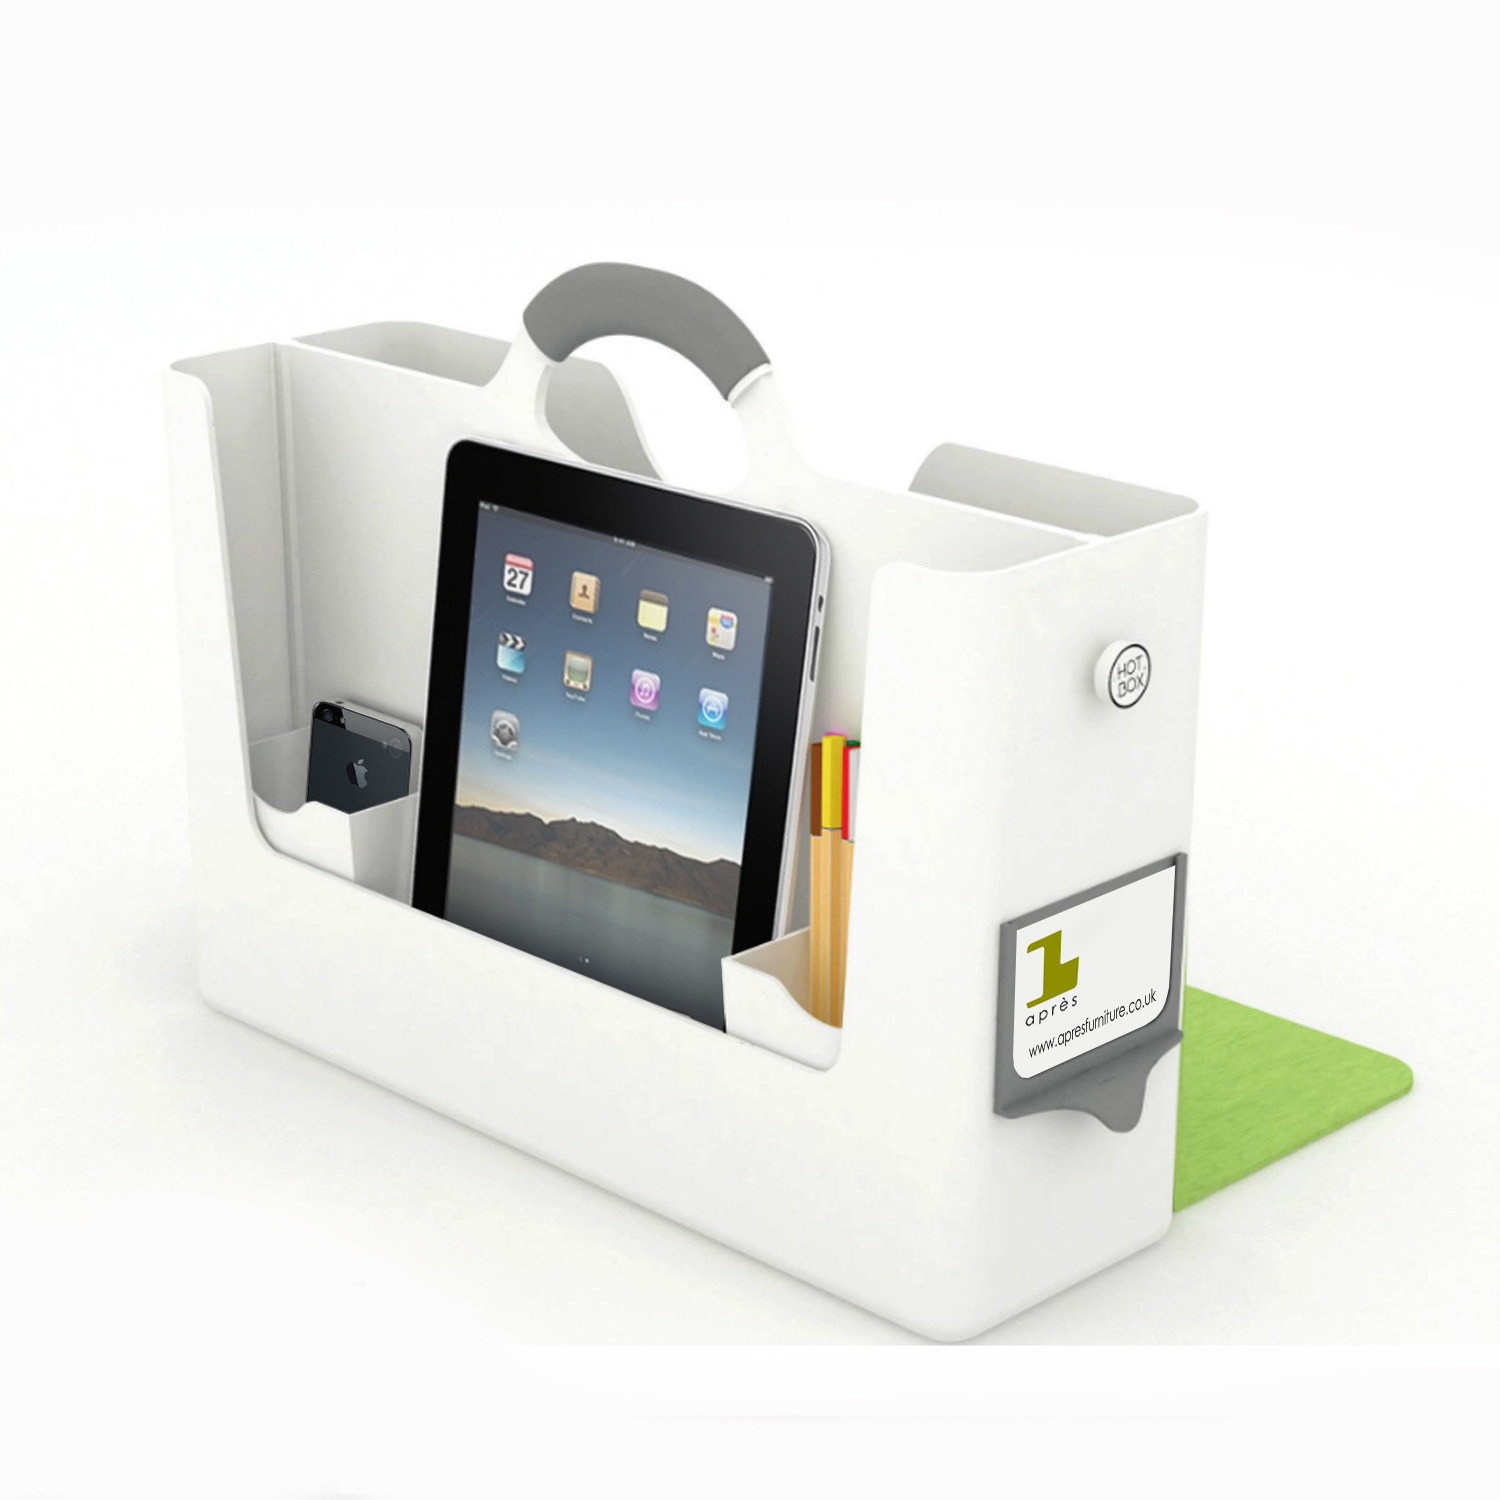 Hb Two Personal Storage Mobile Office Storage Apres